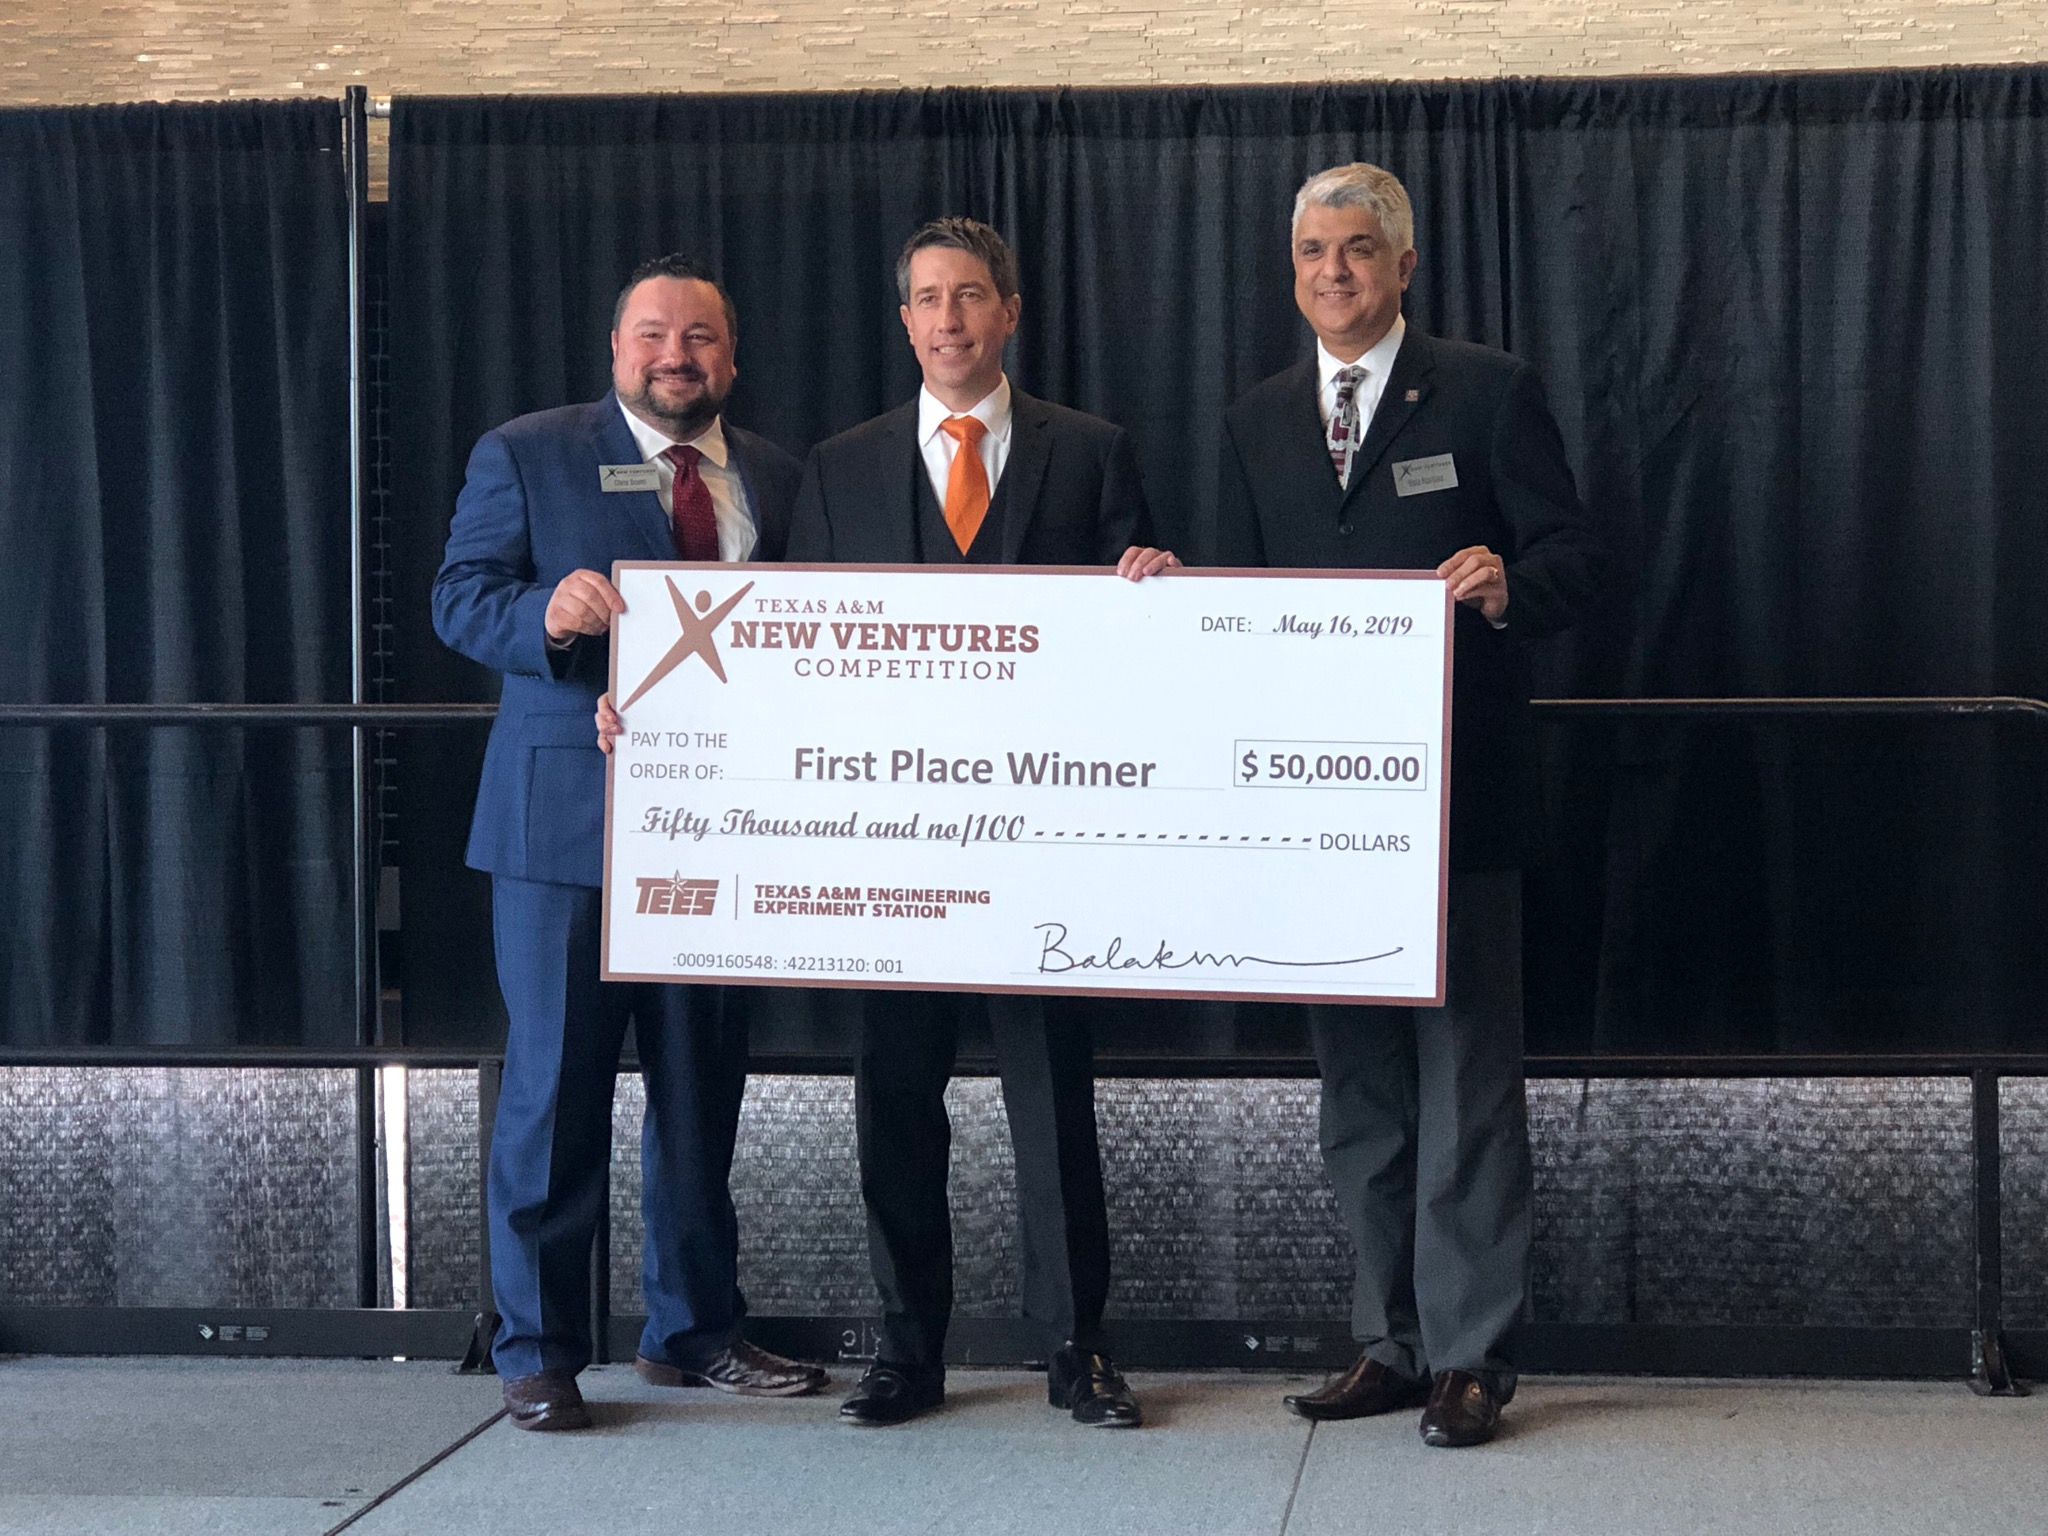 Friendswood company wins Texas A&M New Ventures Competition